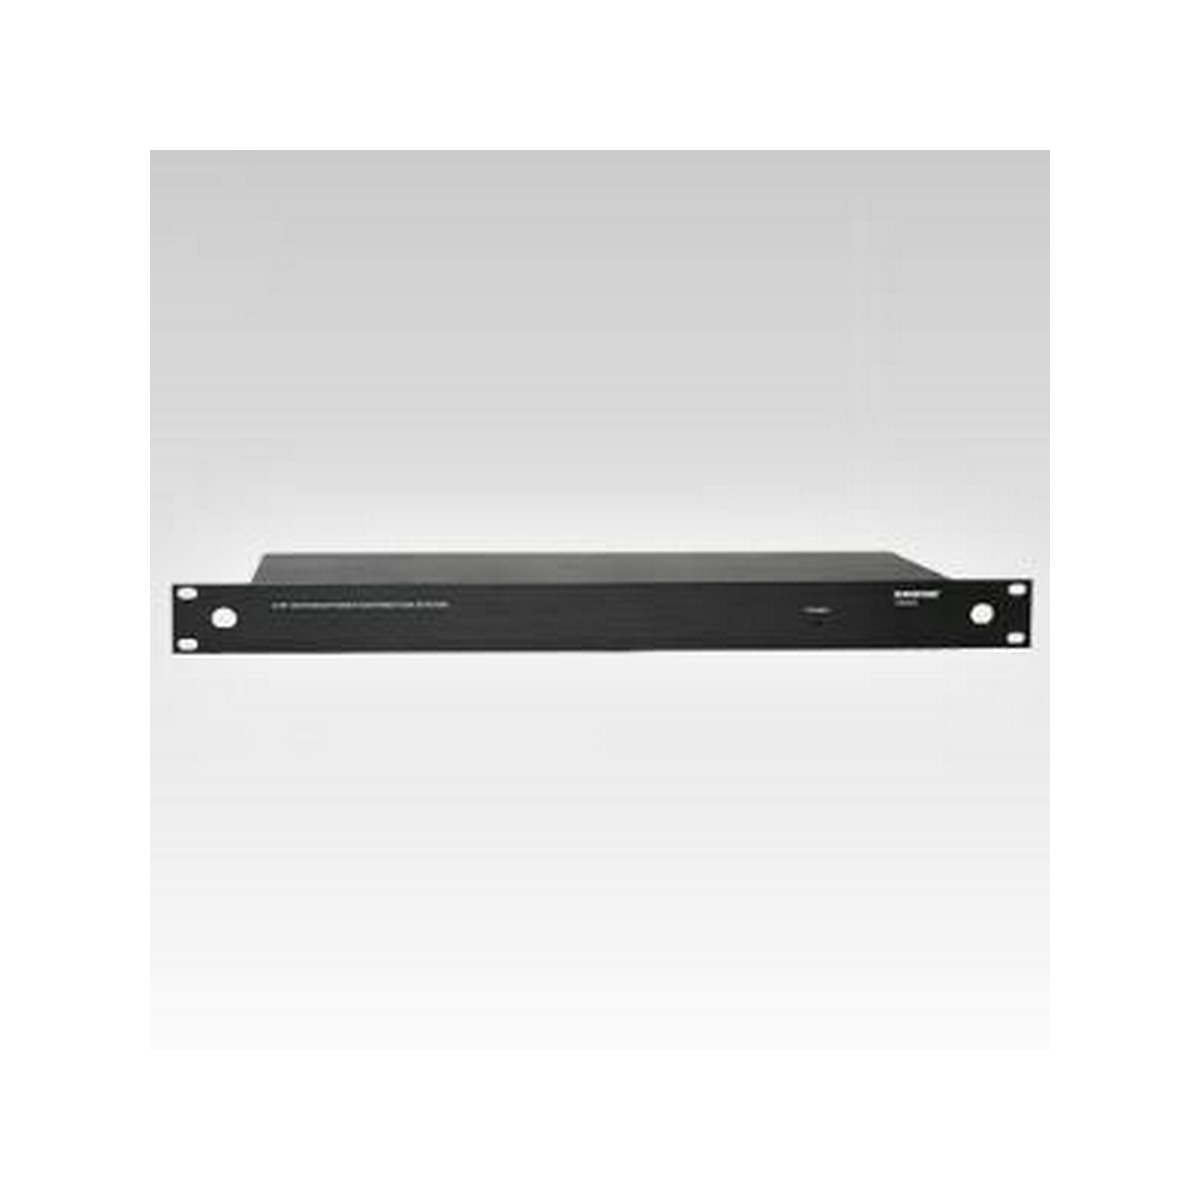 SHURE UA844SWB ANTENNA DISTRIBUTION